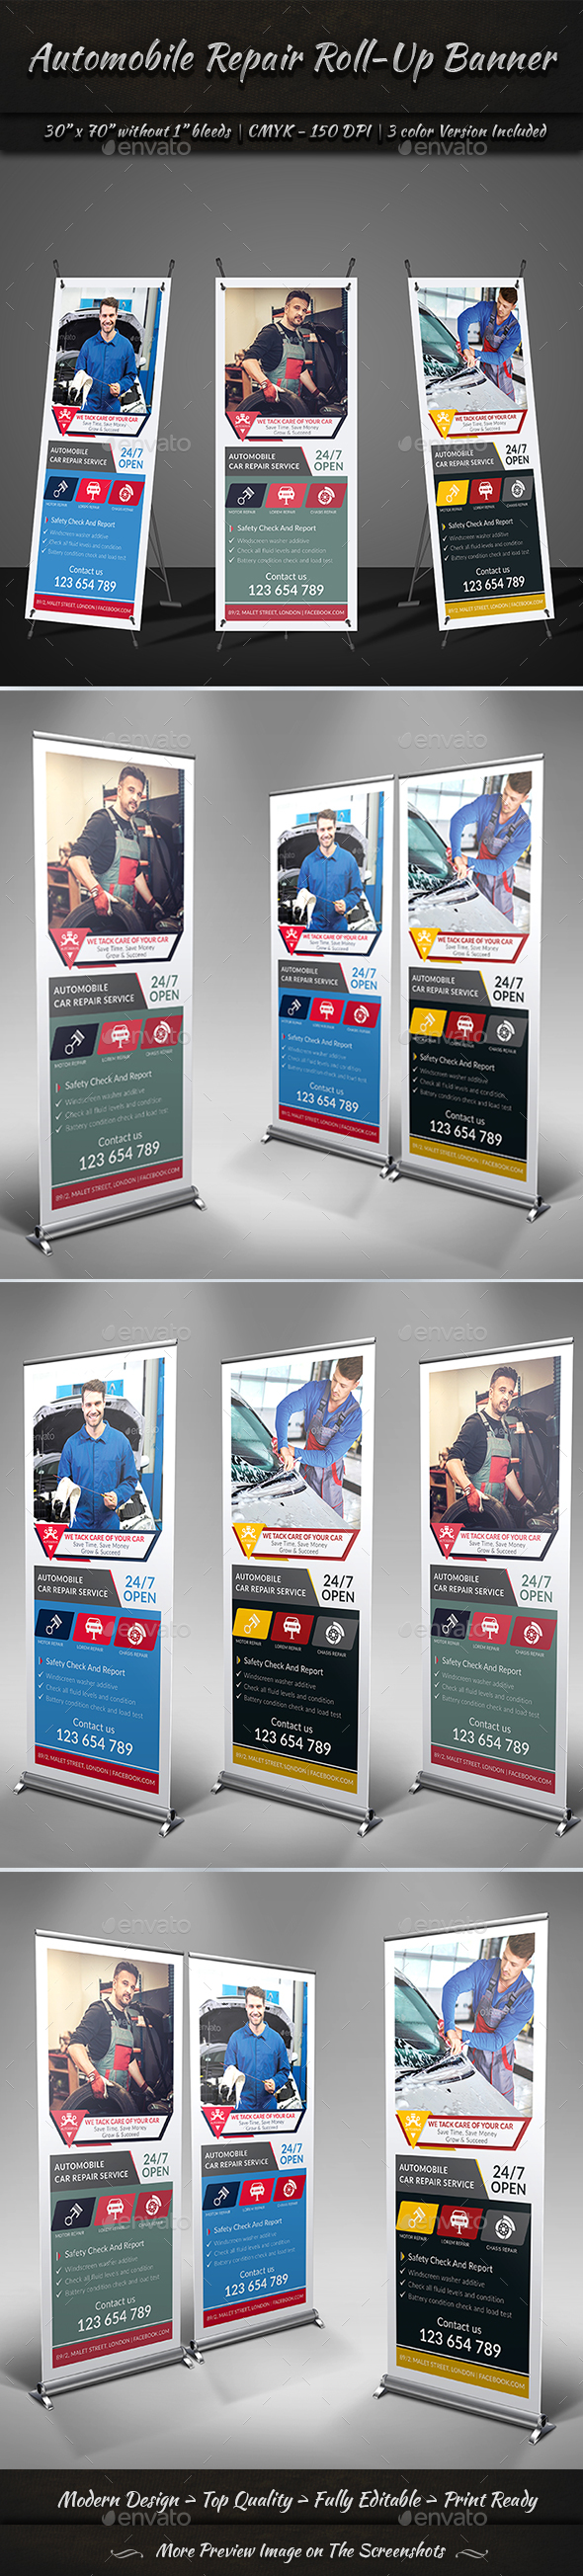 Automobile Repair Roll-Up Banner Template - Signage Print Templates